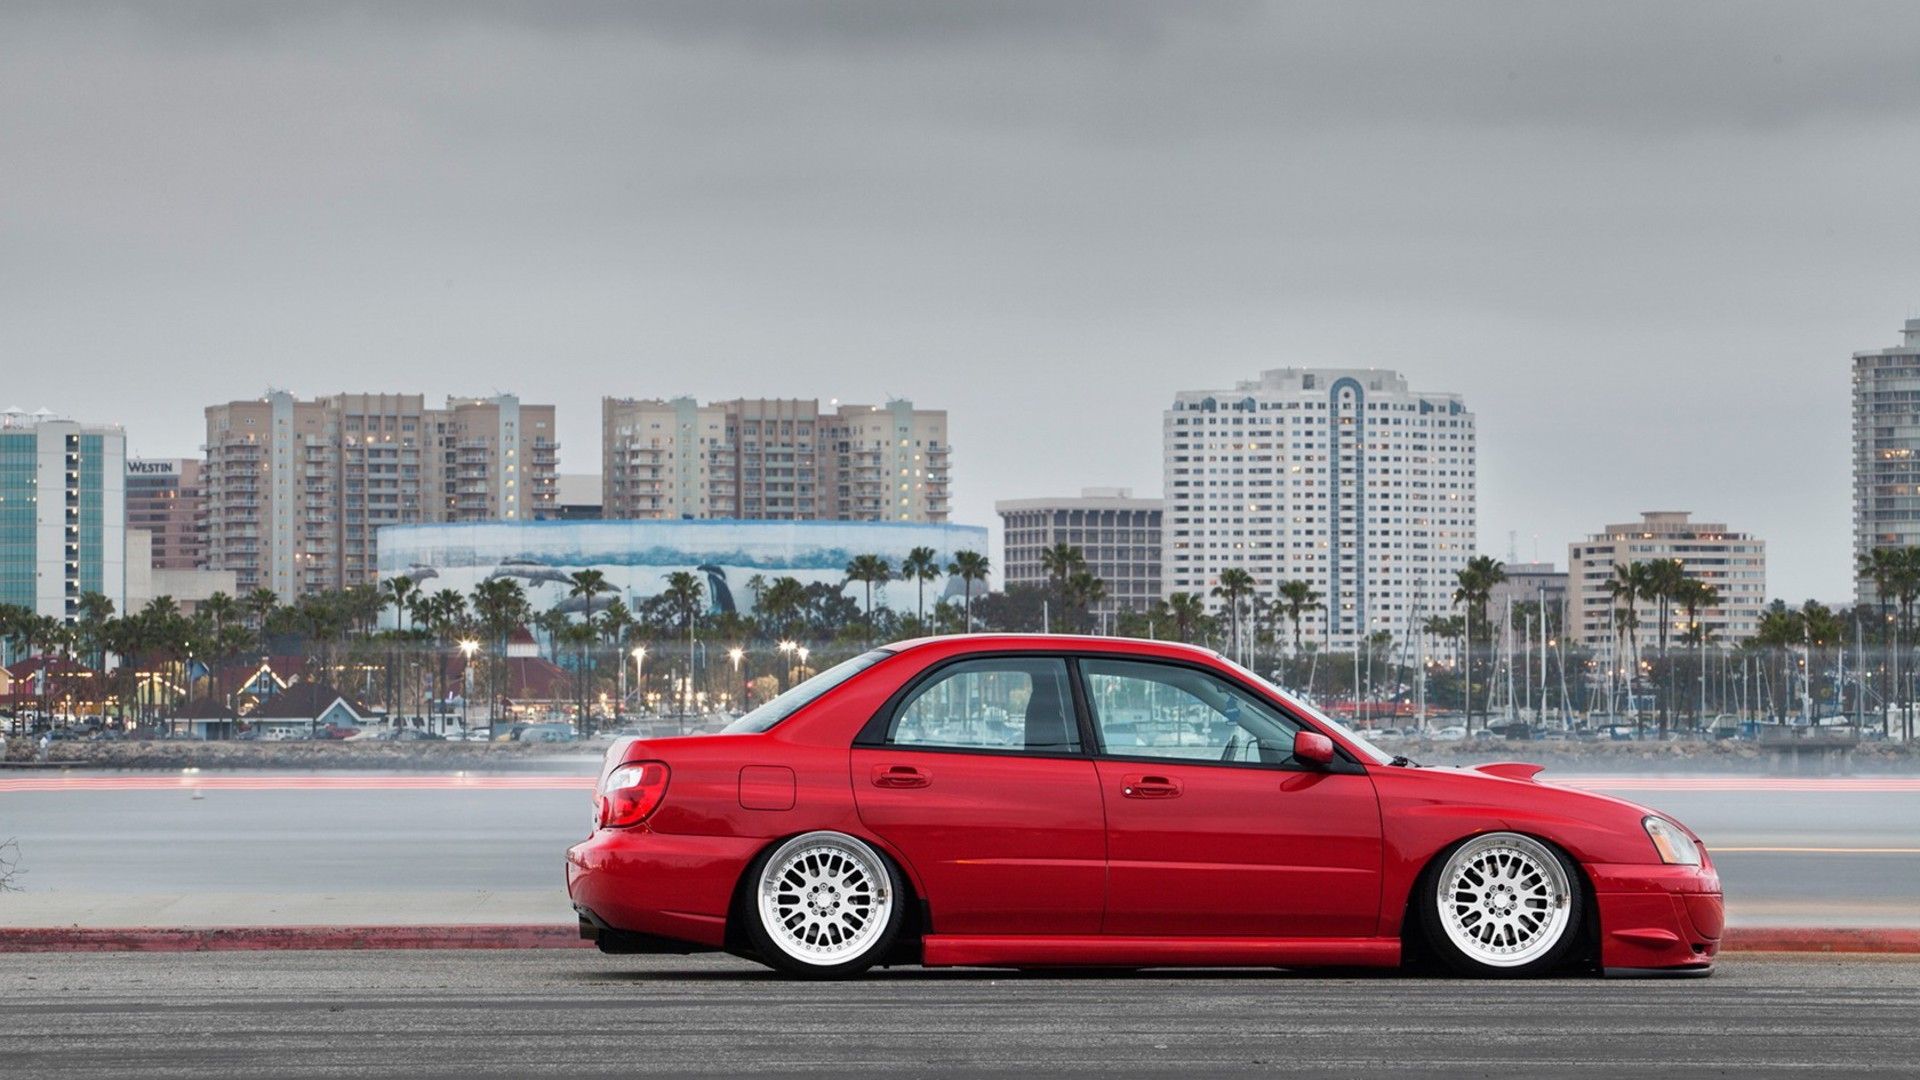 Stanced Car Iphone Wallpaper Cars Tuning Subaru Impreza Slammed Wallpaper